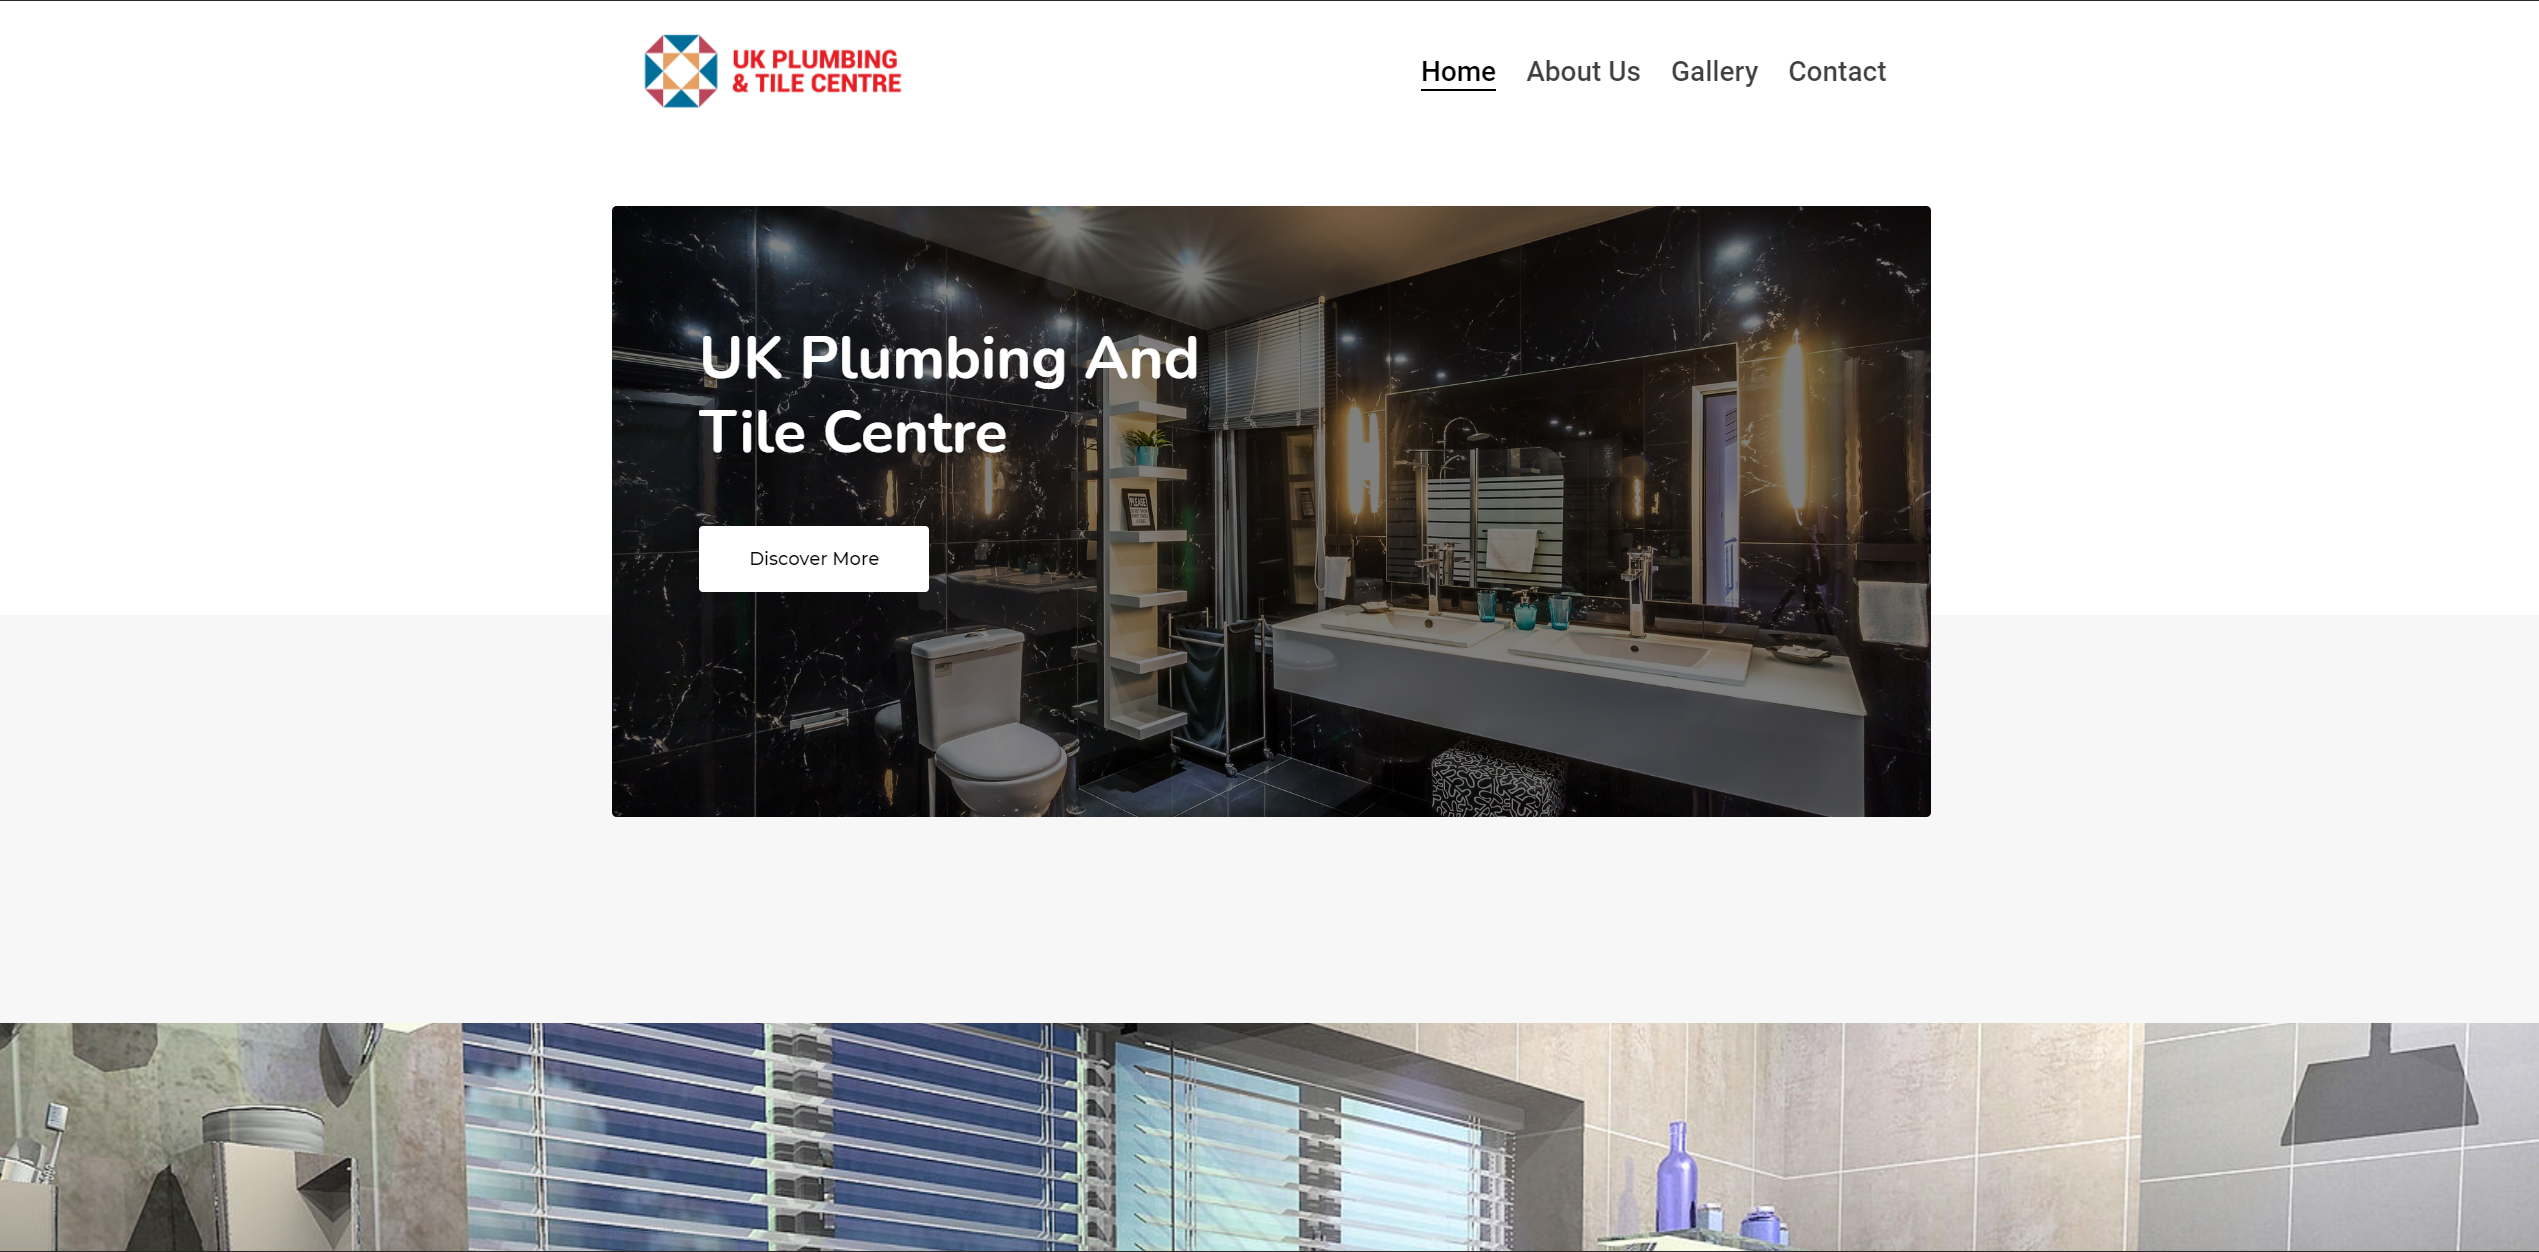 UK Plumbing And Tile Centre